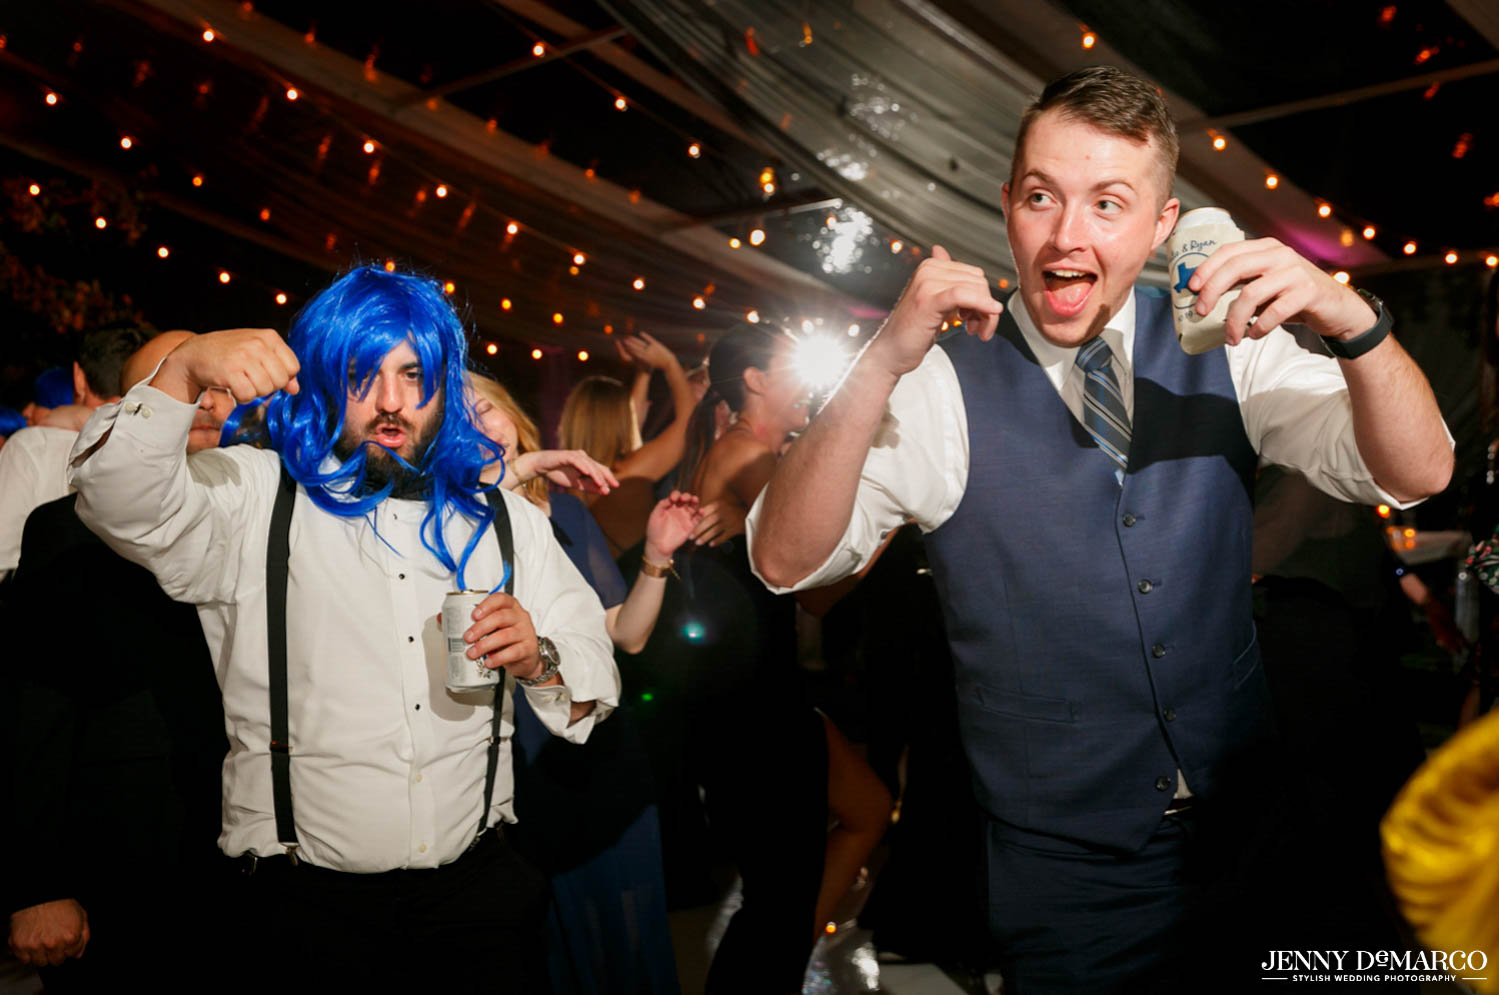 groomsmen dancing with bright blue wigs